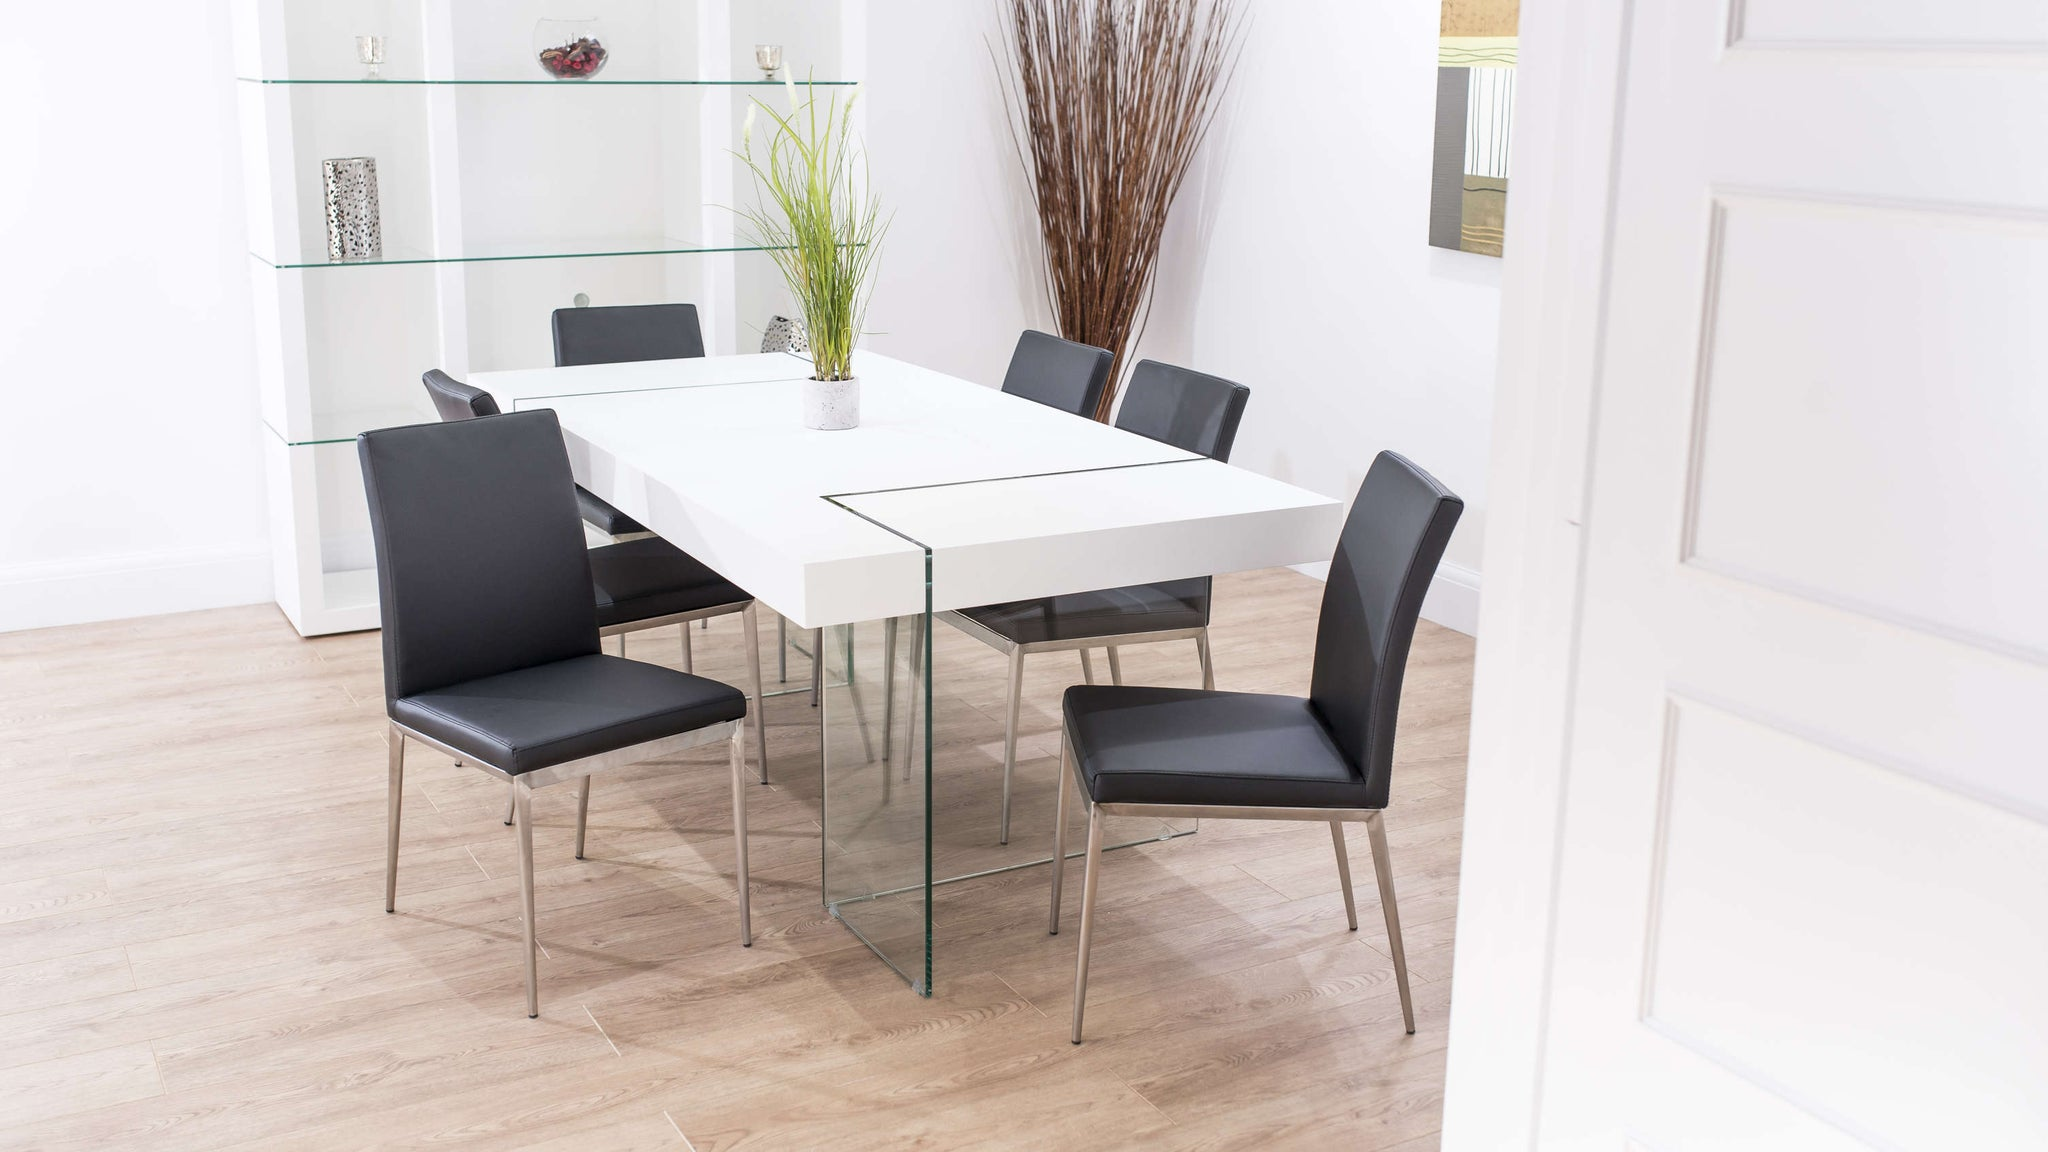 Black Dining Chairs and White Floating Dining Table